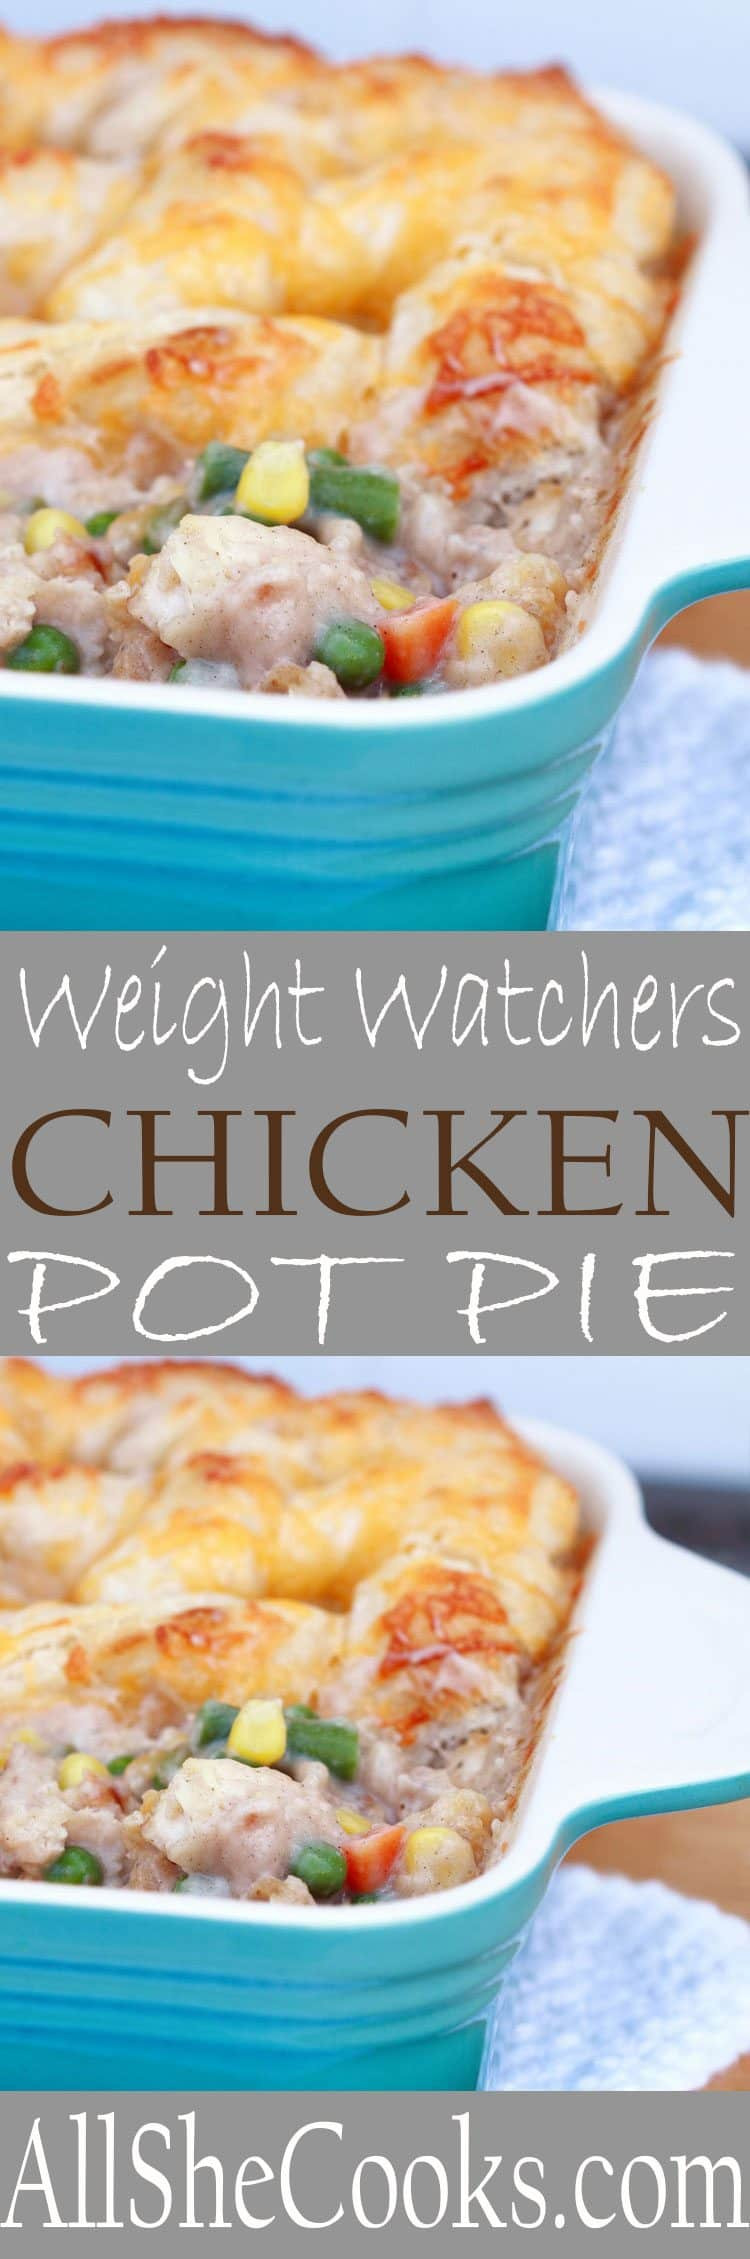 Low Calorie Chicken Pot Pie Recipes  Chicken Pot Pie Weight Watchers